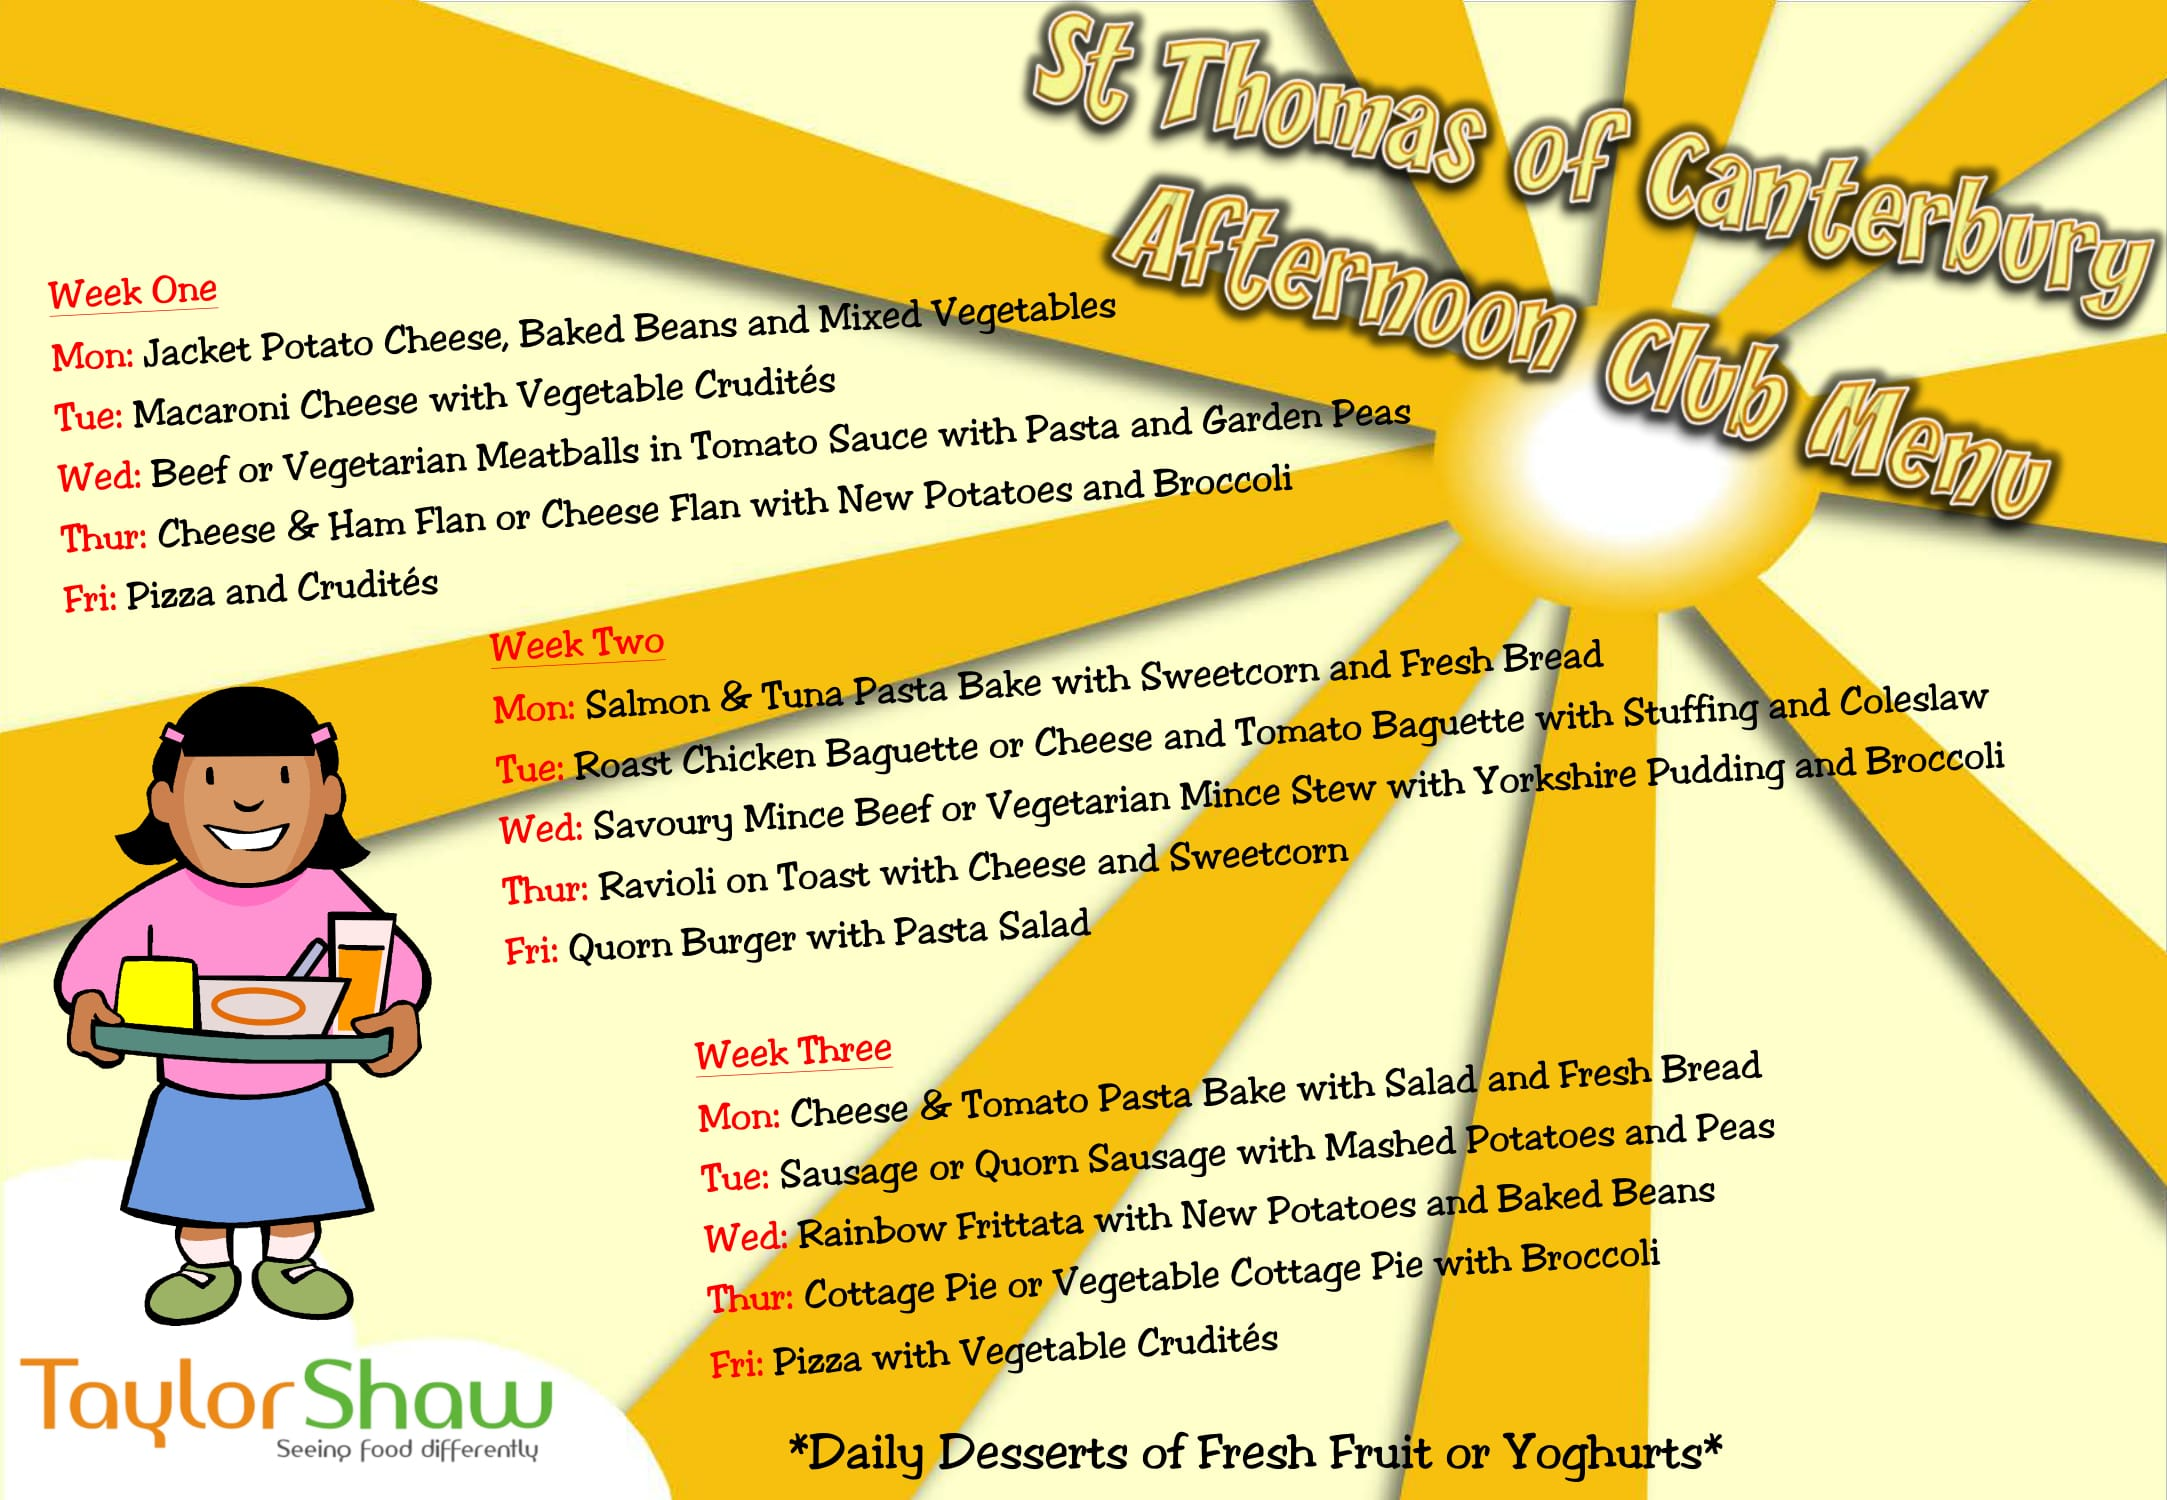 St Thomas of Canterbury Afternoon Club Updated Menu 20.9.17 1